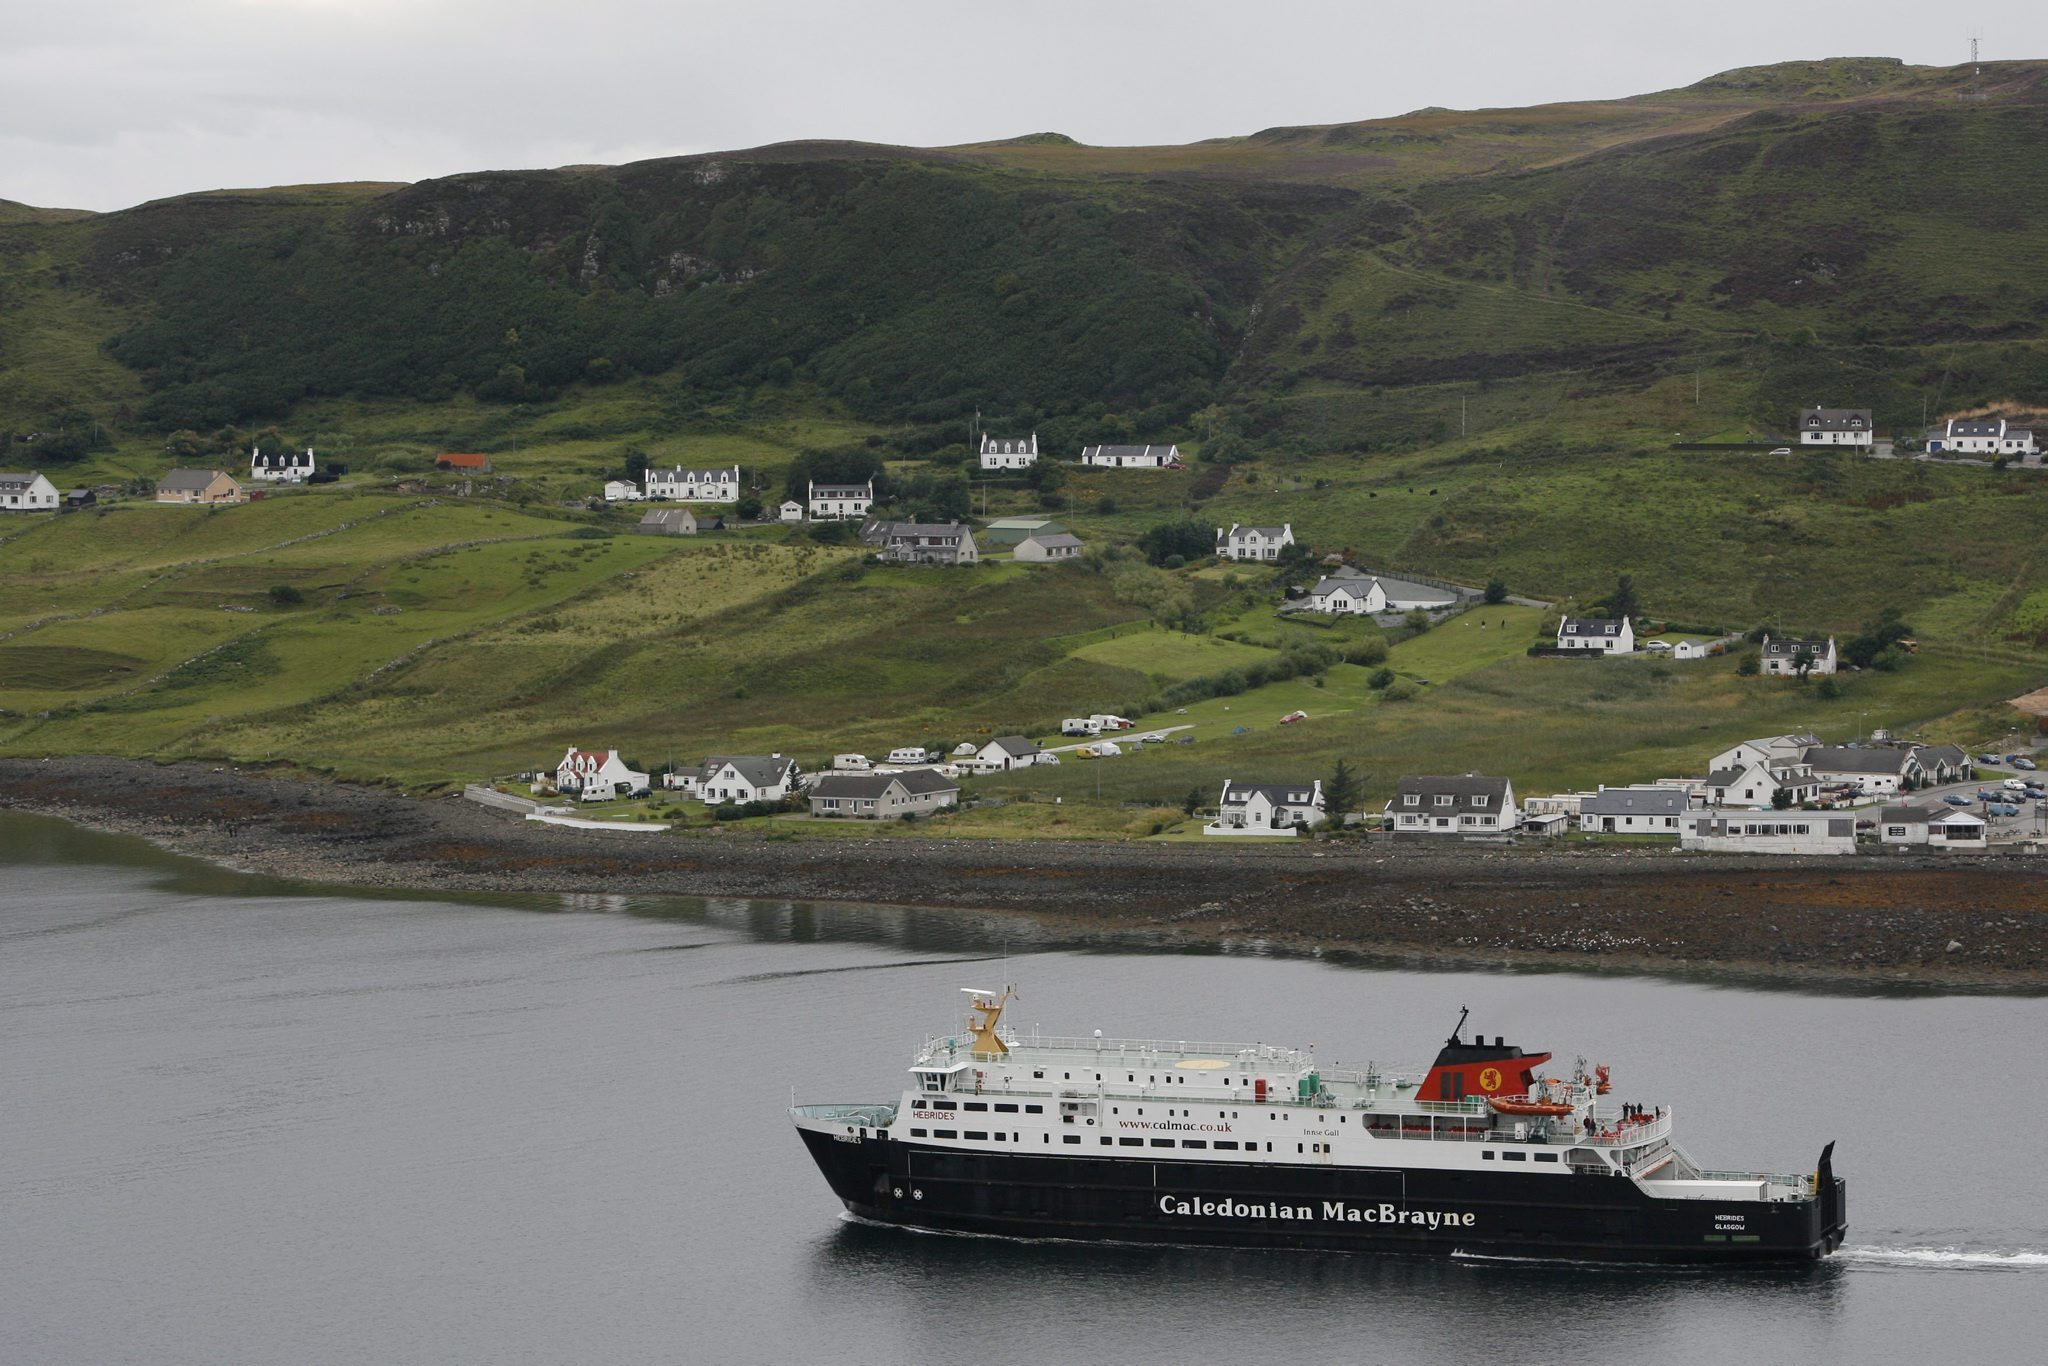 The CalMac ferry sailing out of Uig on Skye heading for Lochmaddy on North Uist..